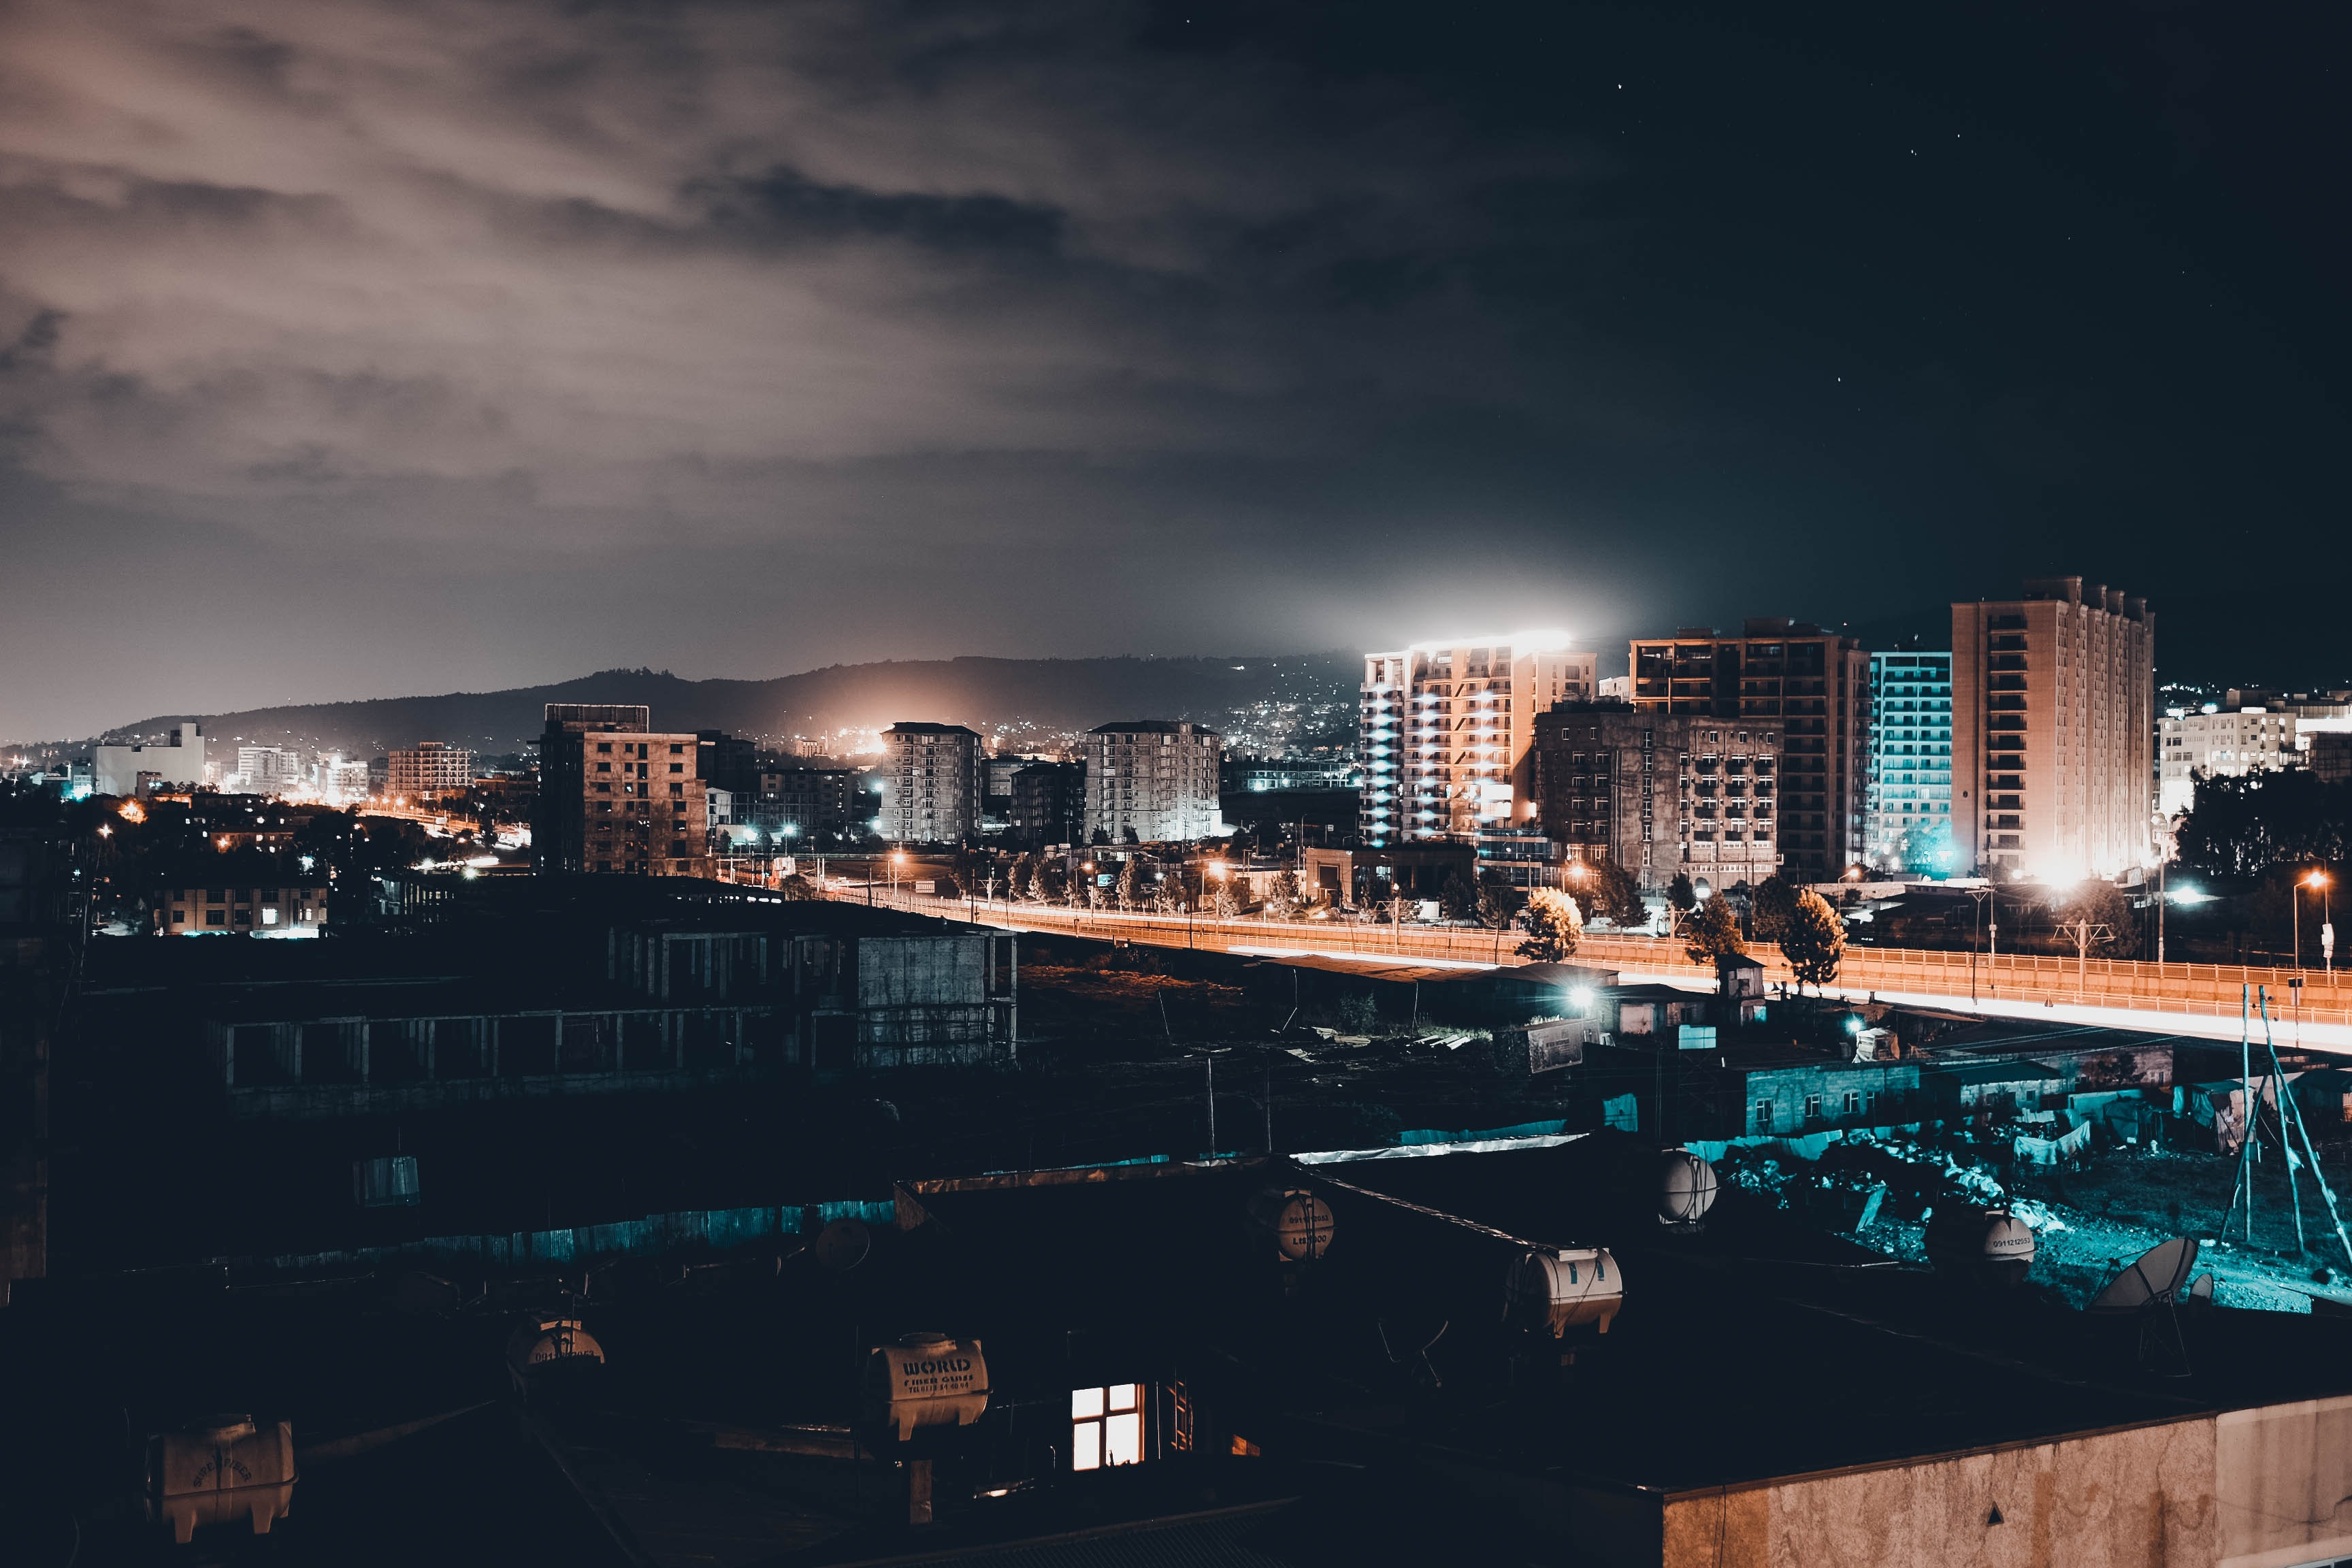 buildings during night time